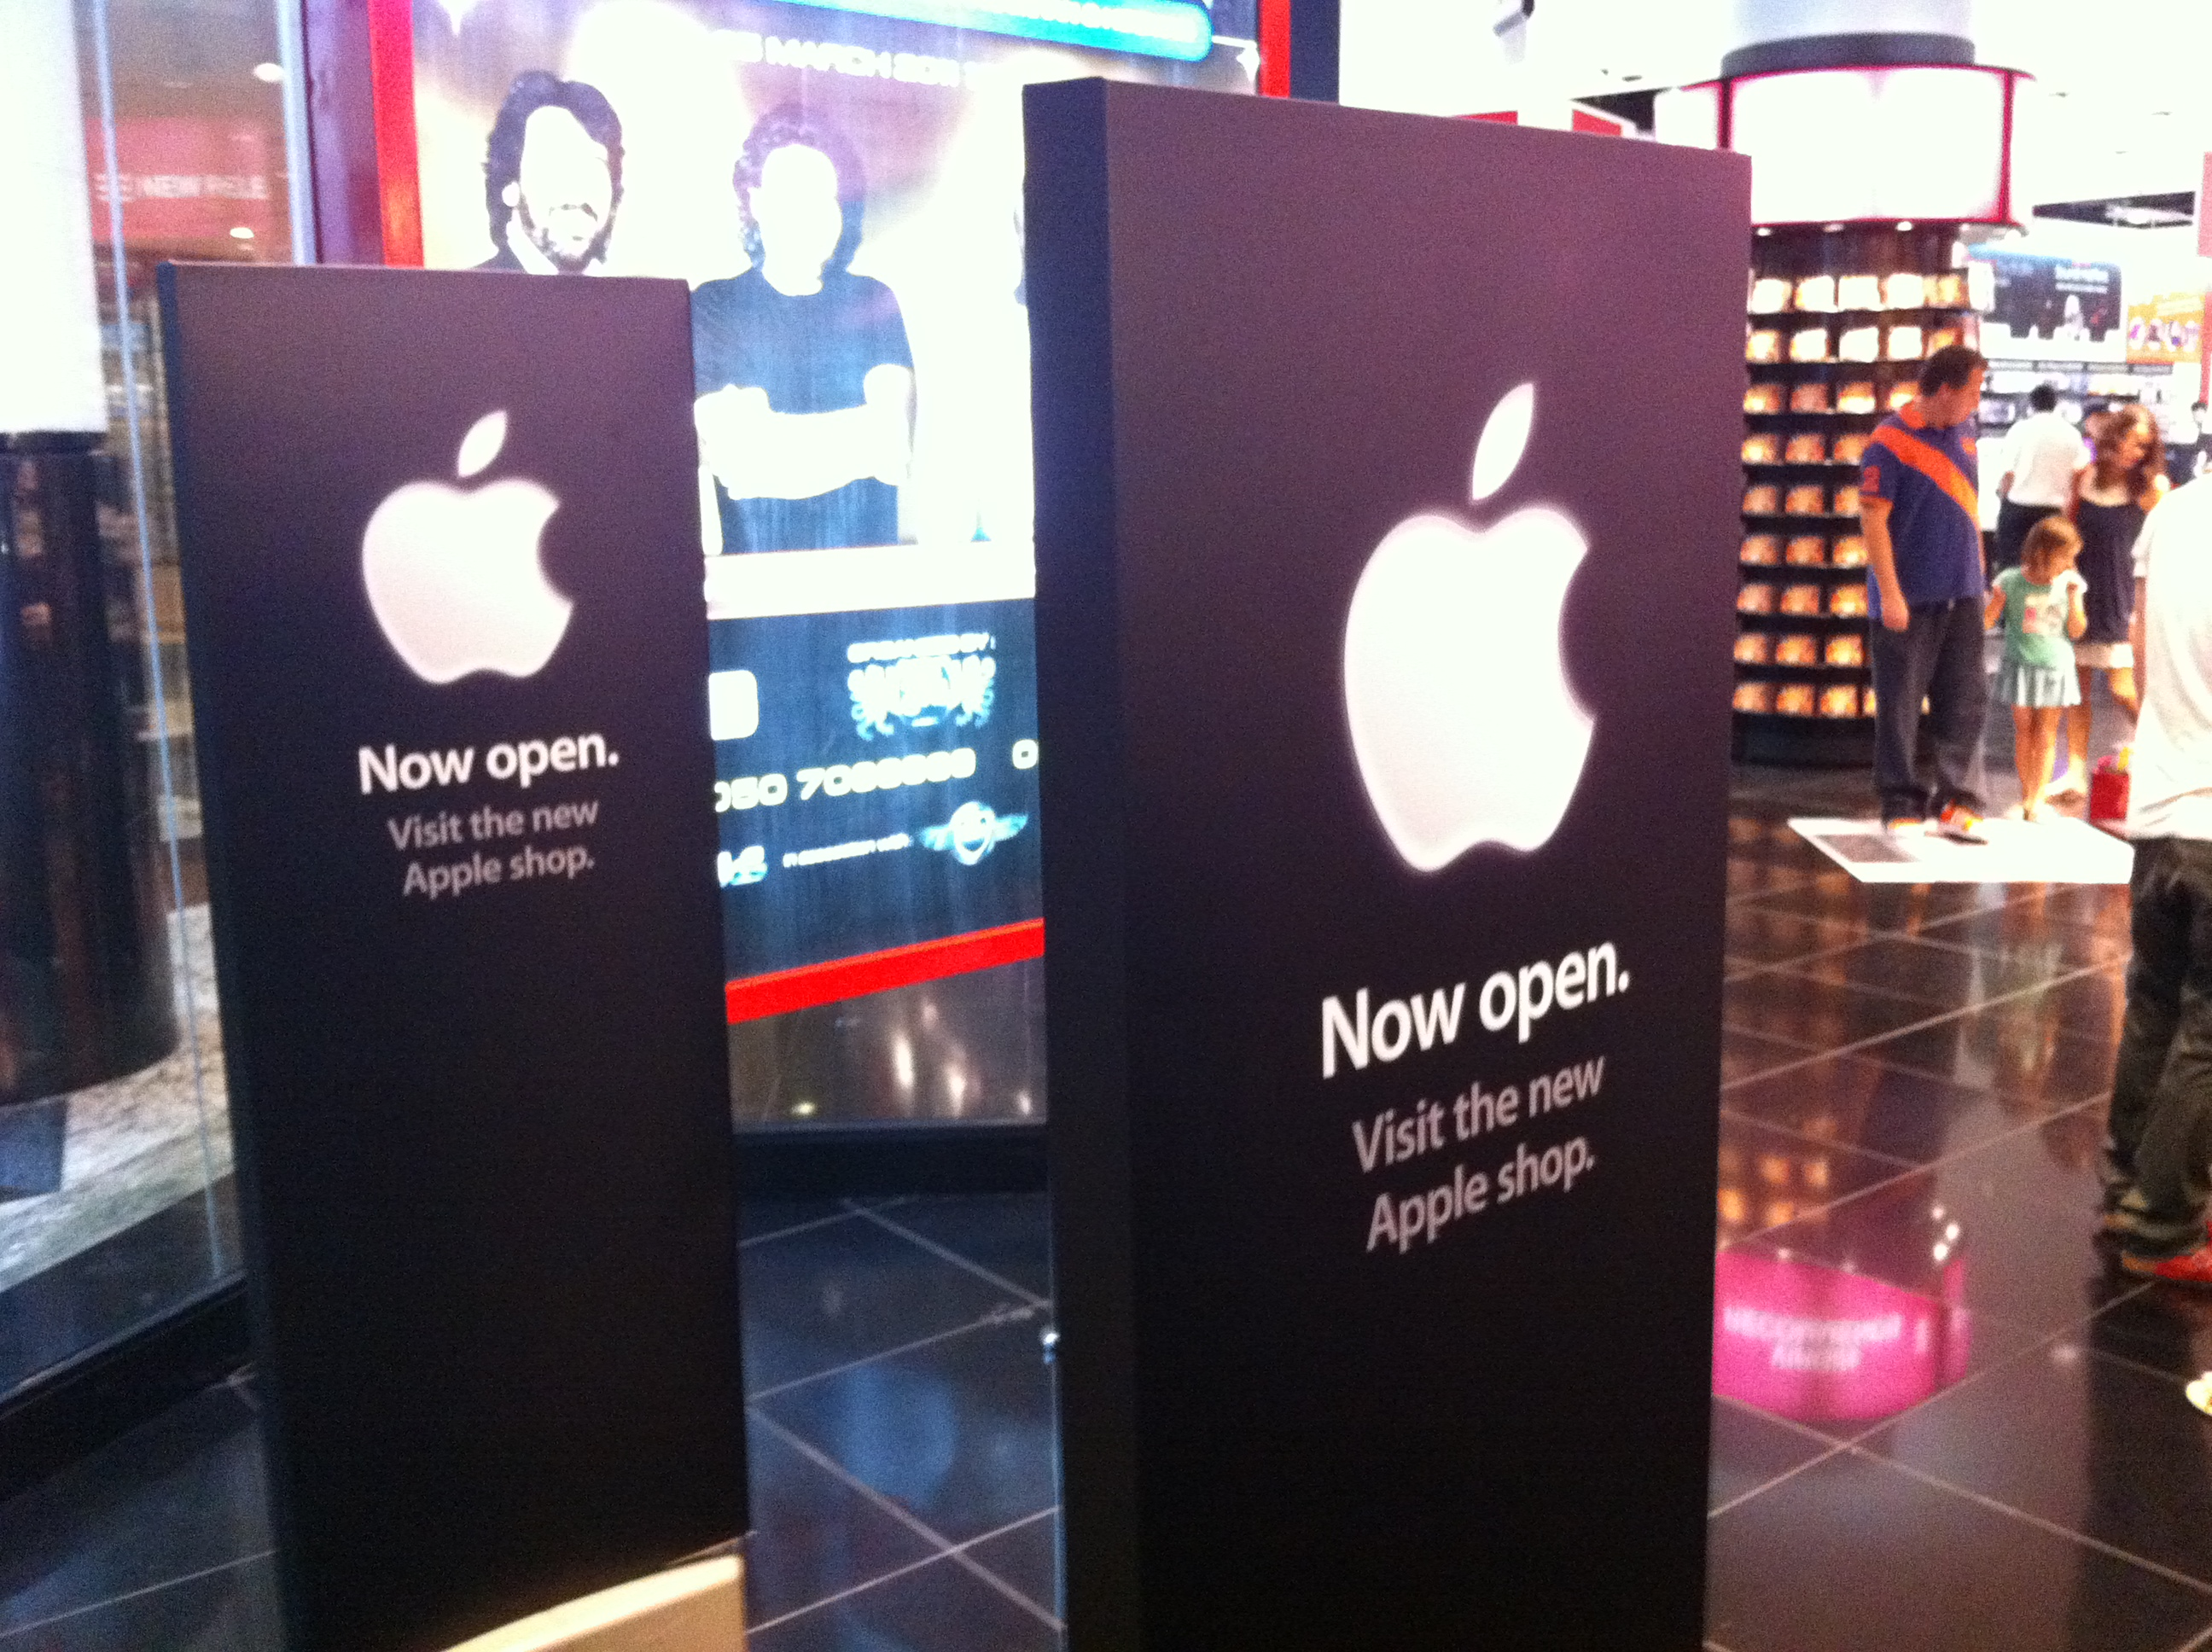 Apple Store Dubai – Very Disappointing